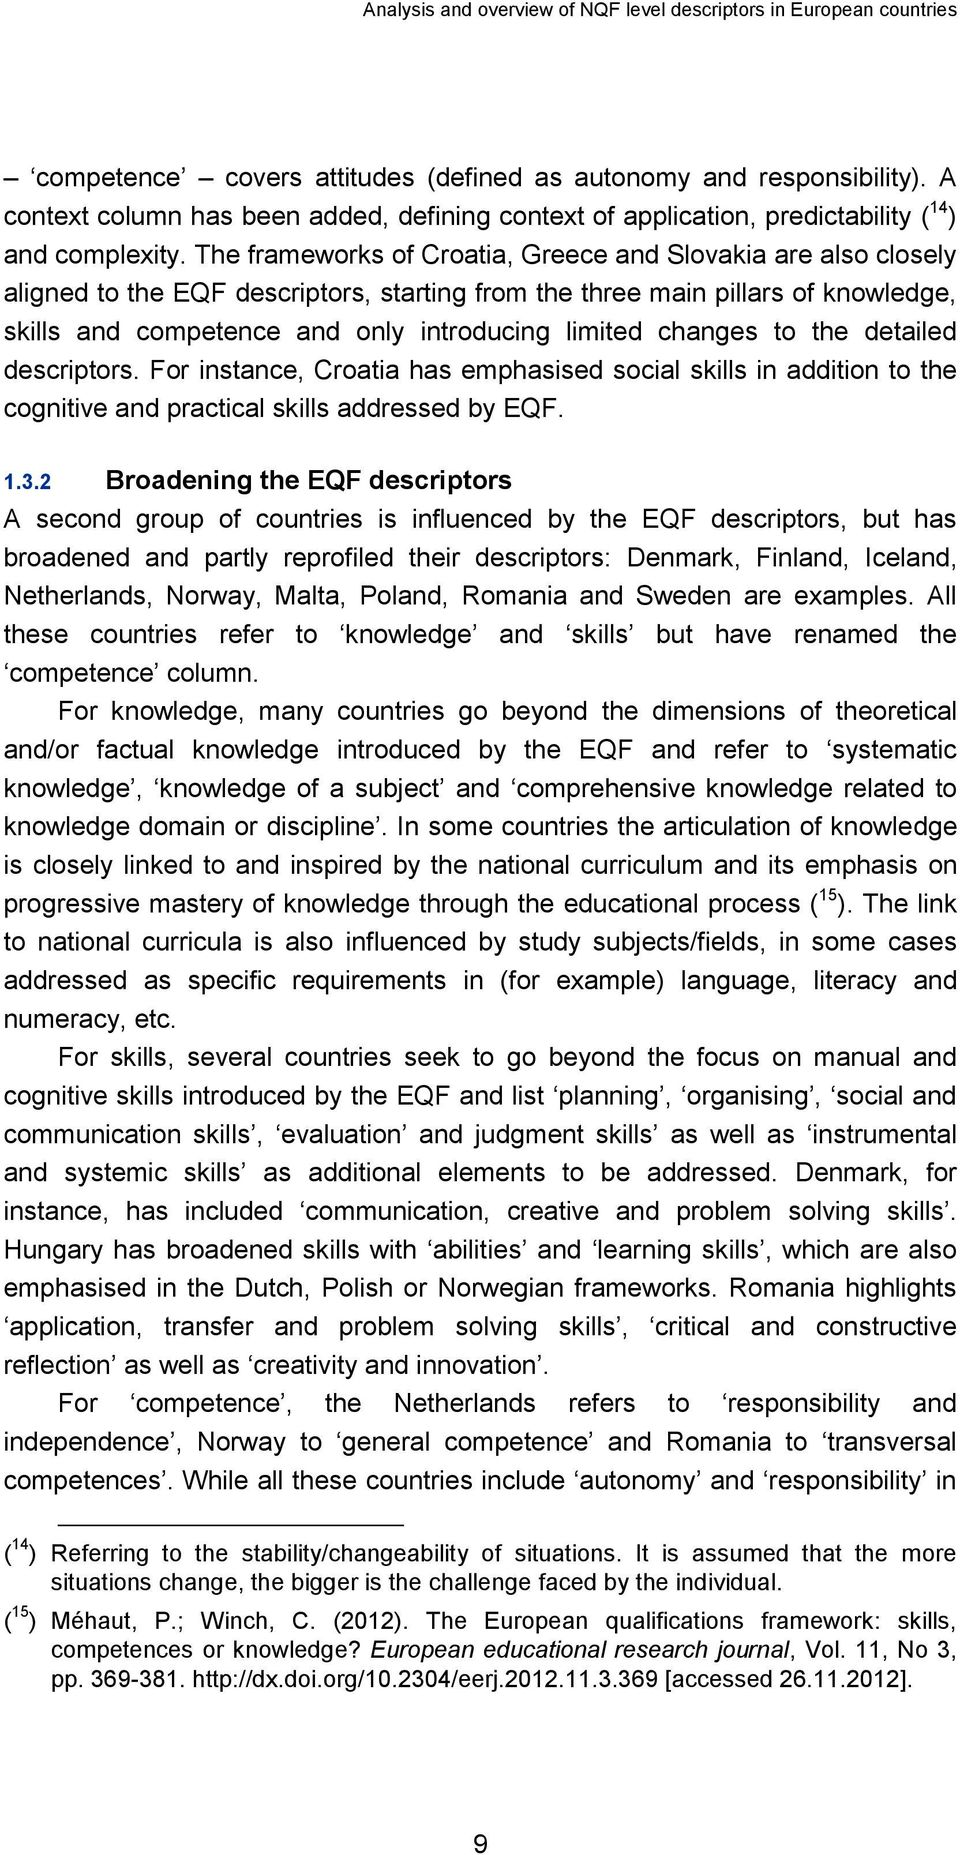 changes to the detailed descriptors. For instance, Croatia has emphasised social skills in addition to the cognitive and practical skills addressed by EQF. 1.3.